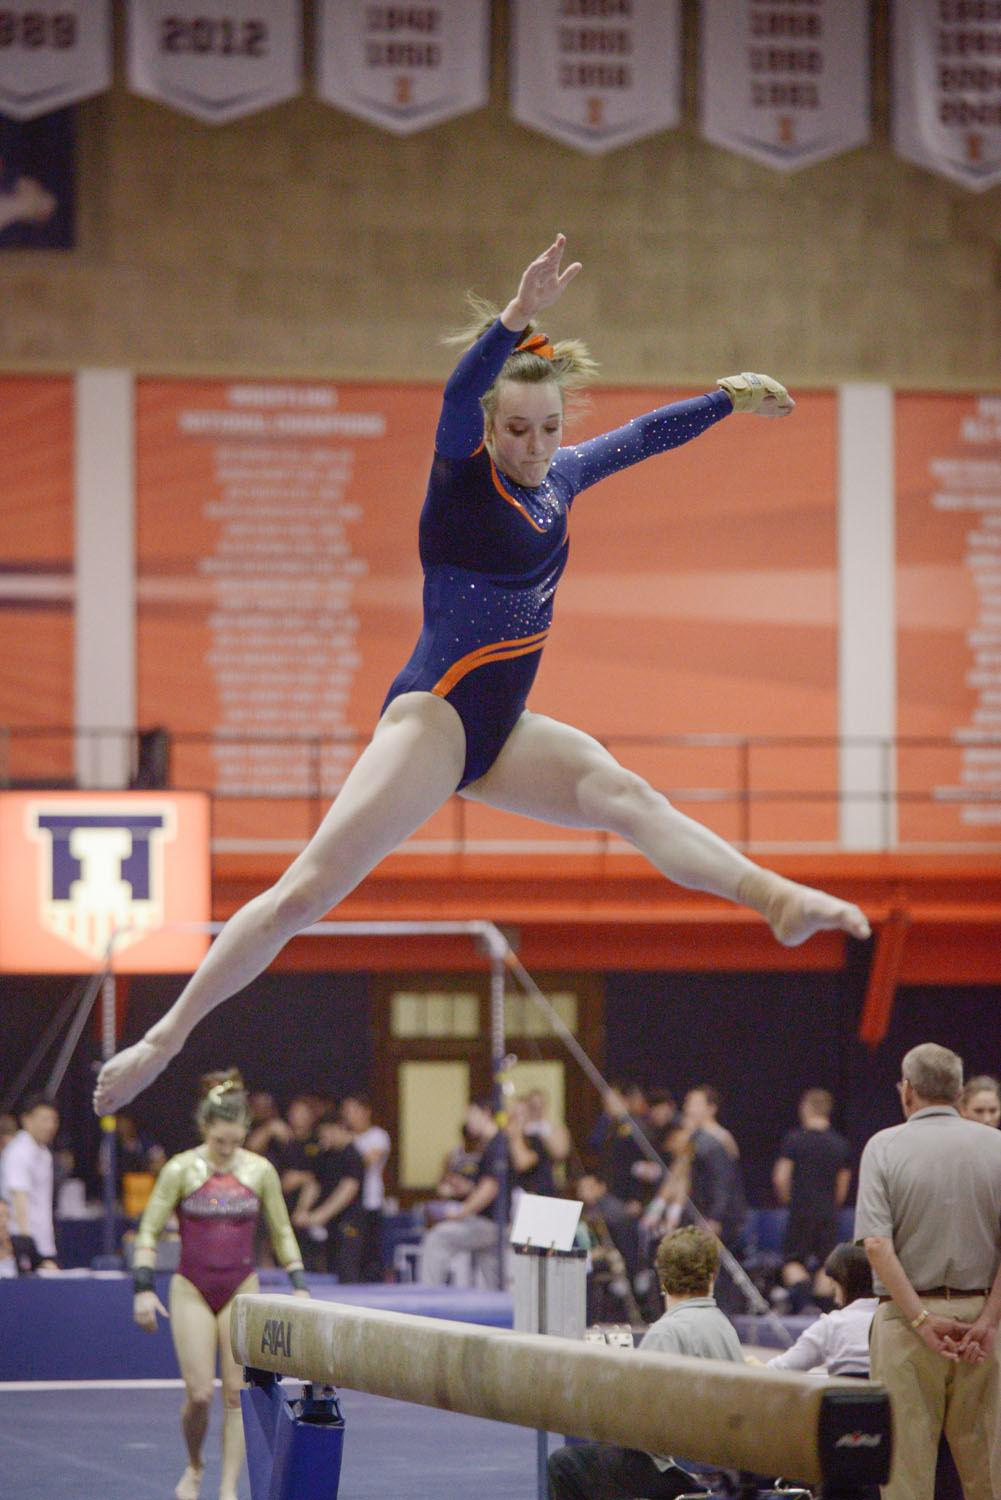 Illinois' Becca Cuppy performs a routine on the balance beam against Minnesota at Huff Hall on Feb. 7. Cuppy is in her first semester at Illinois after graduating high school early.